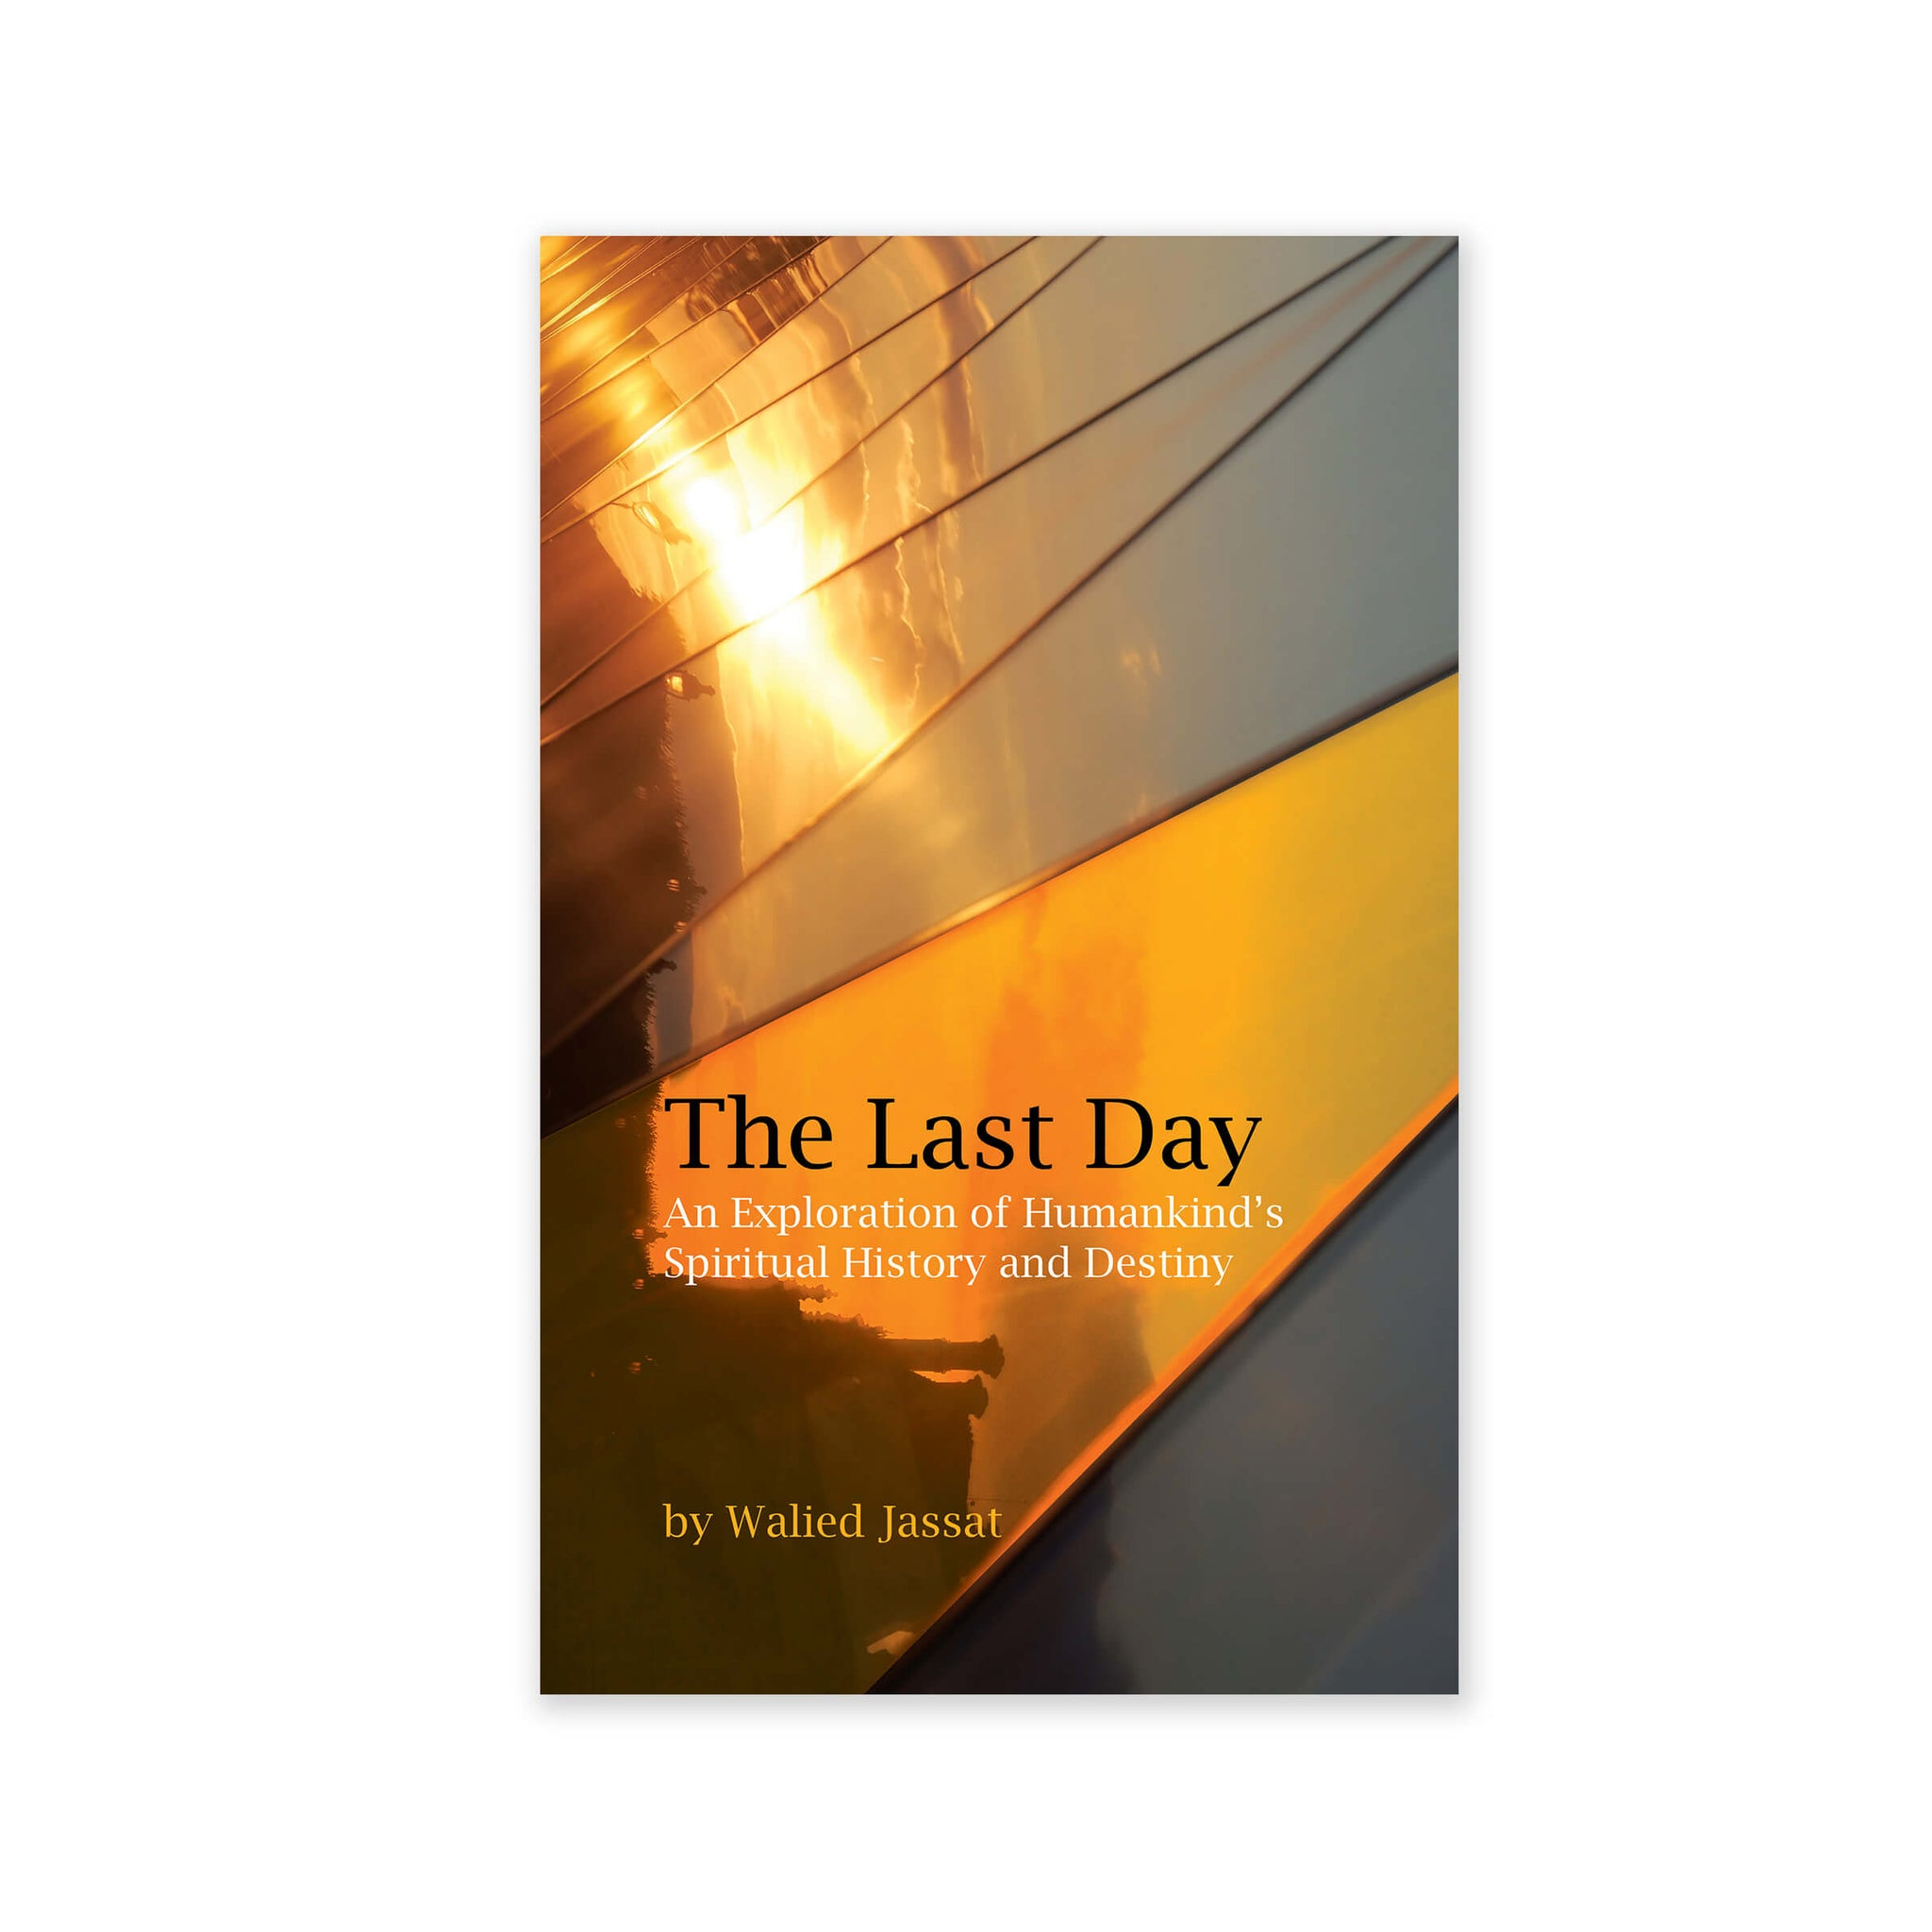 Last Day - An Exploration of Humankind's Spiritual History and Destiny